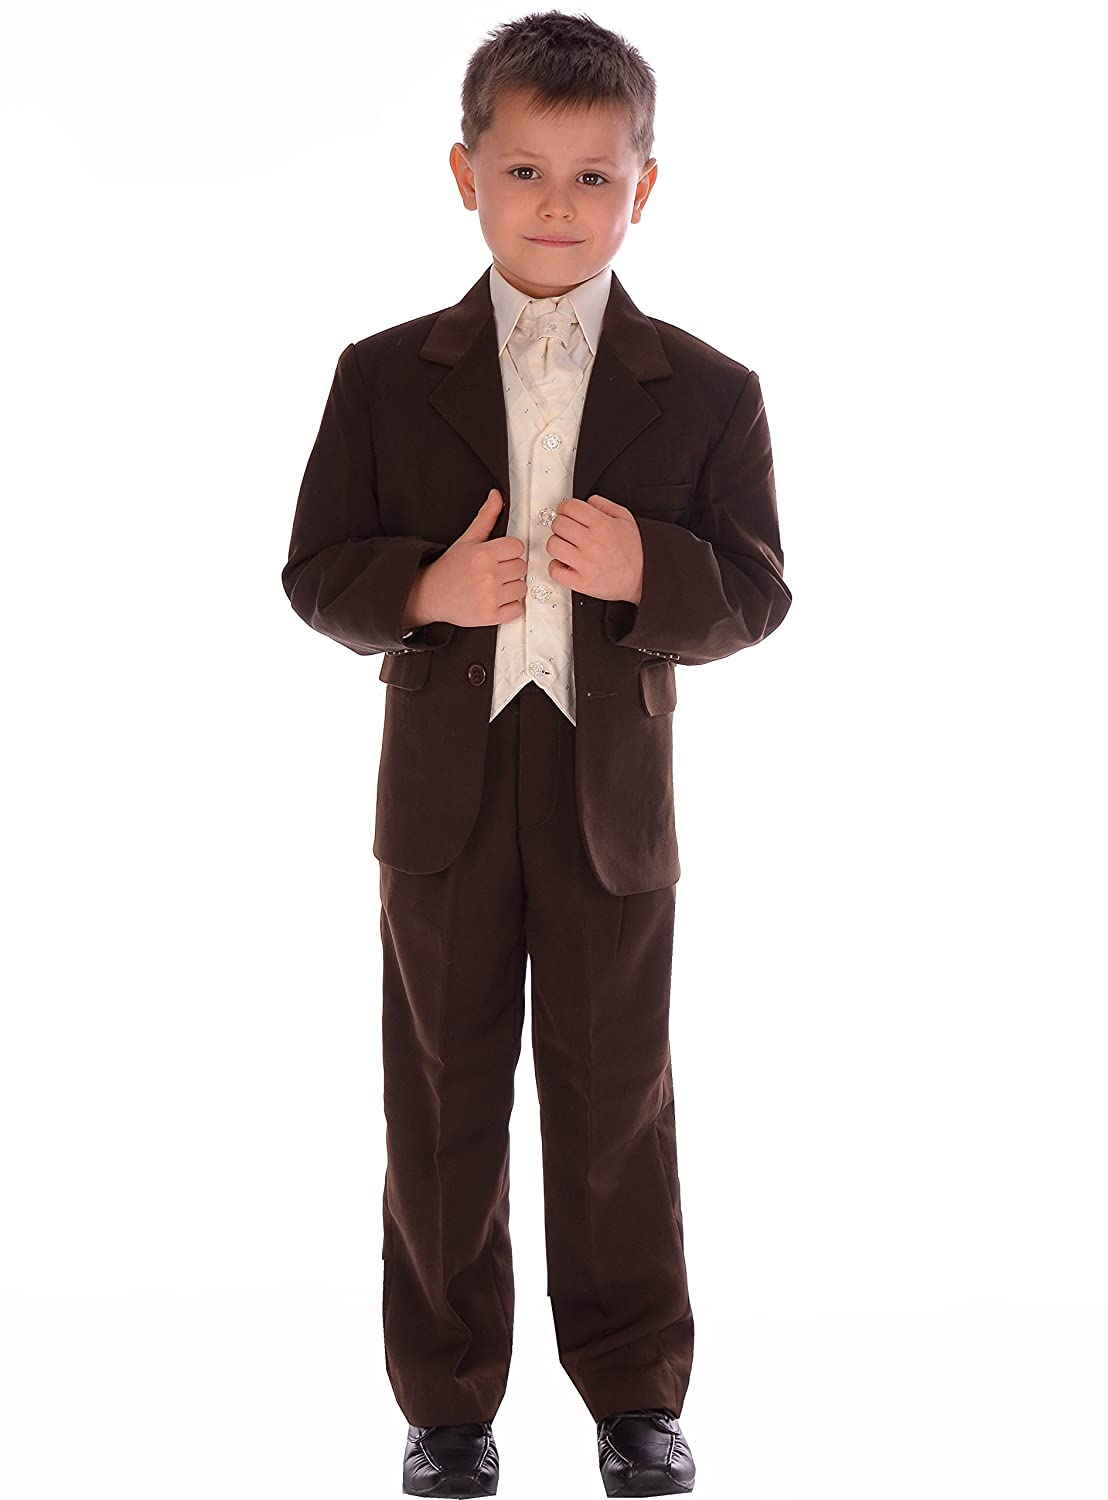 Boys Suit Brown Formal Wedding Pageboy 5 Piece Suit 0-3 months to 14-15 years